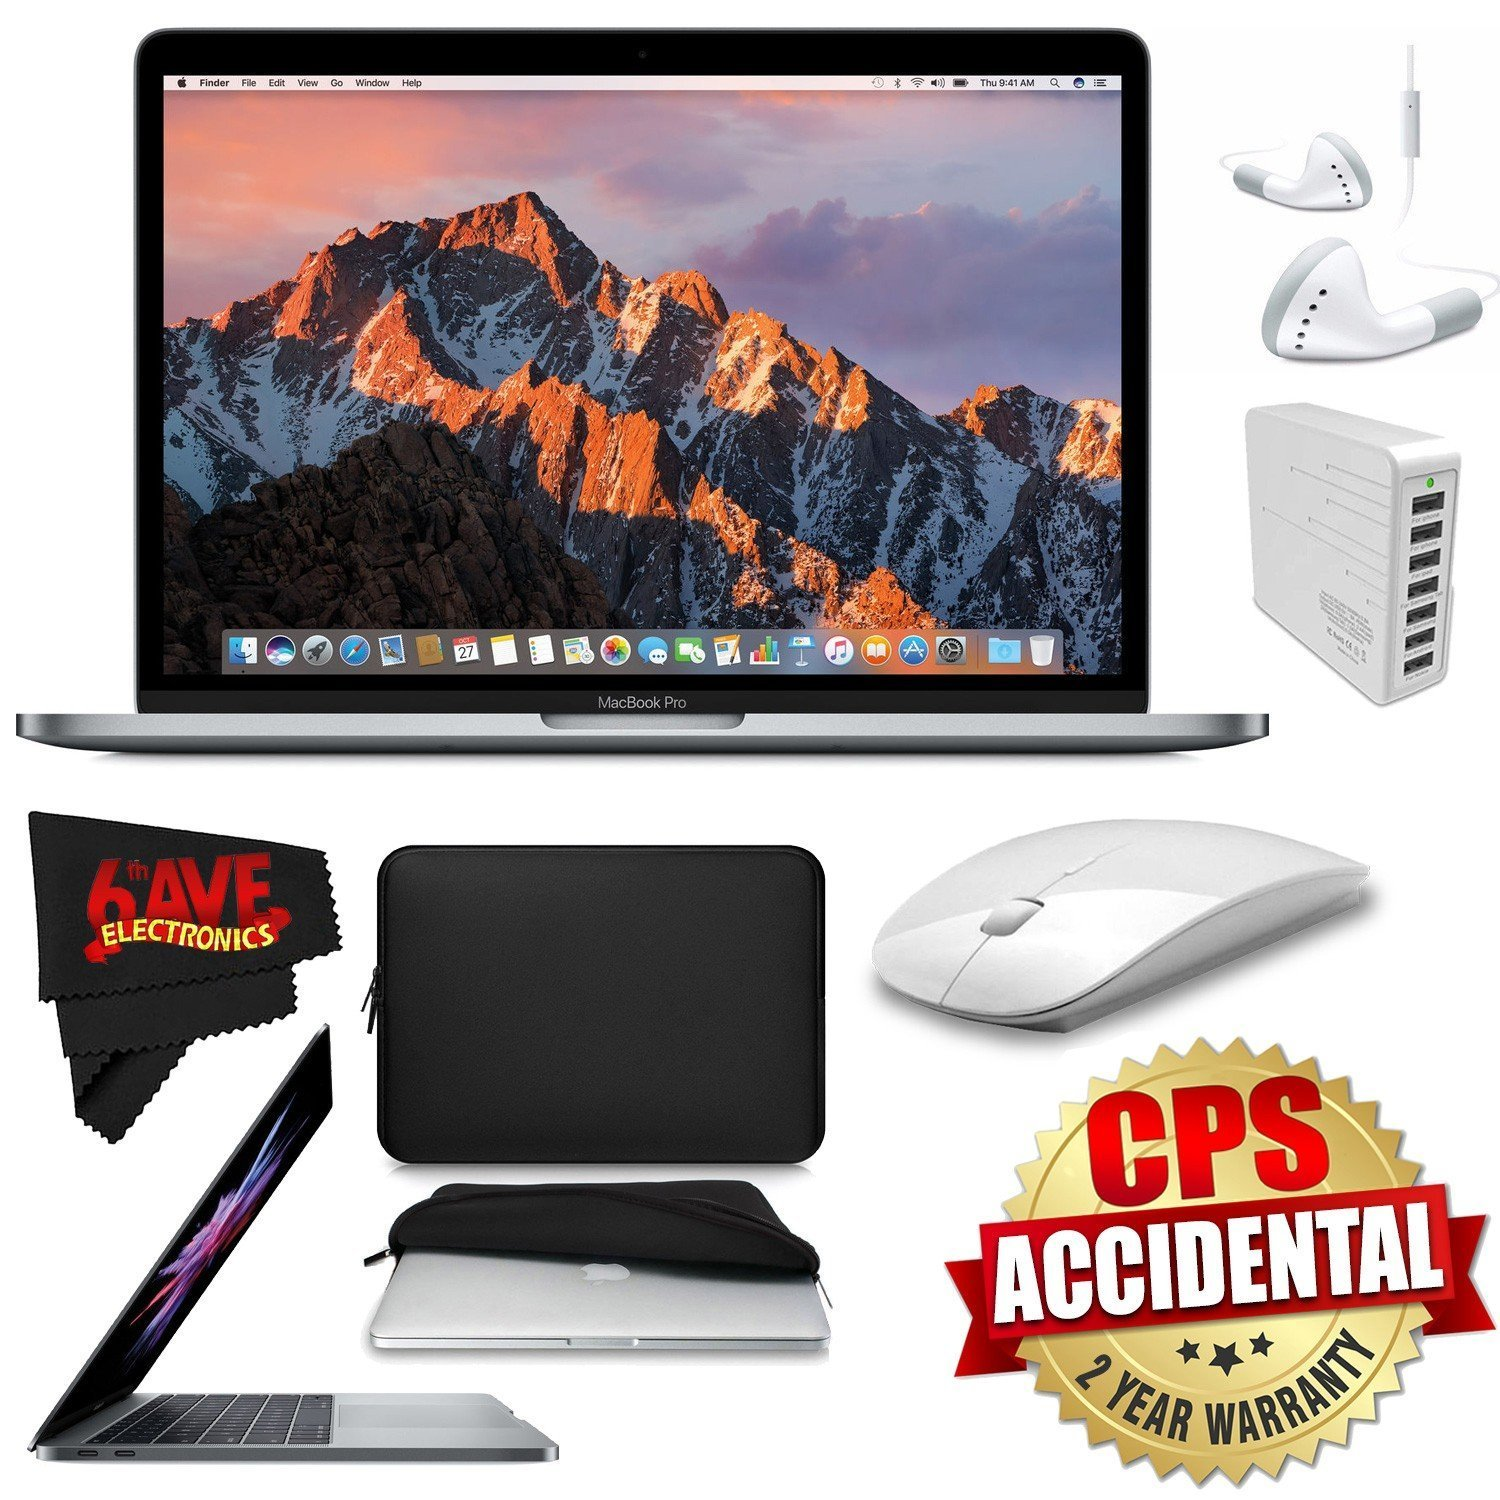 "6Ave Apple 13.3"" MacBook Pro 512GB SSD (Silver) + Padded Case For Macbook + 2.4 GHz Slim Optical Wireless Bluetooth + iHip IP-IV-WH Fiber Cord Headphone with In-Line Microphone Bundle"